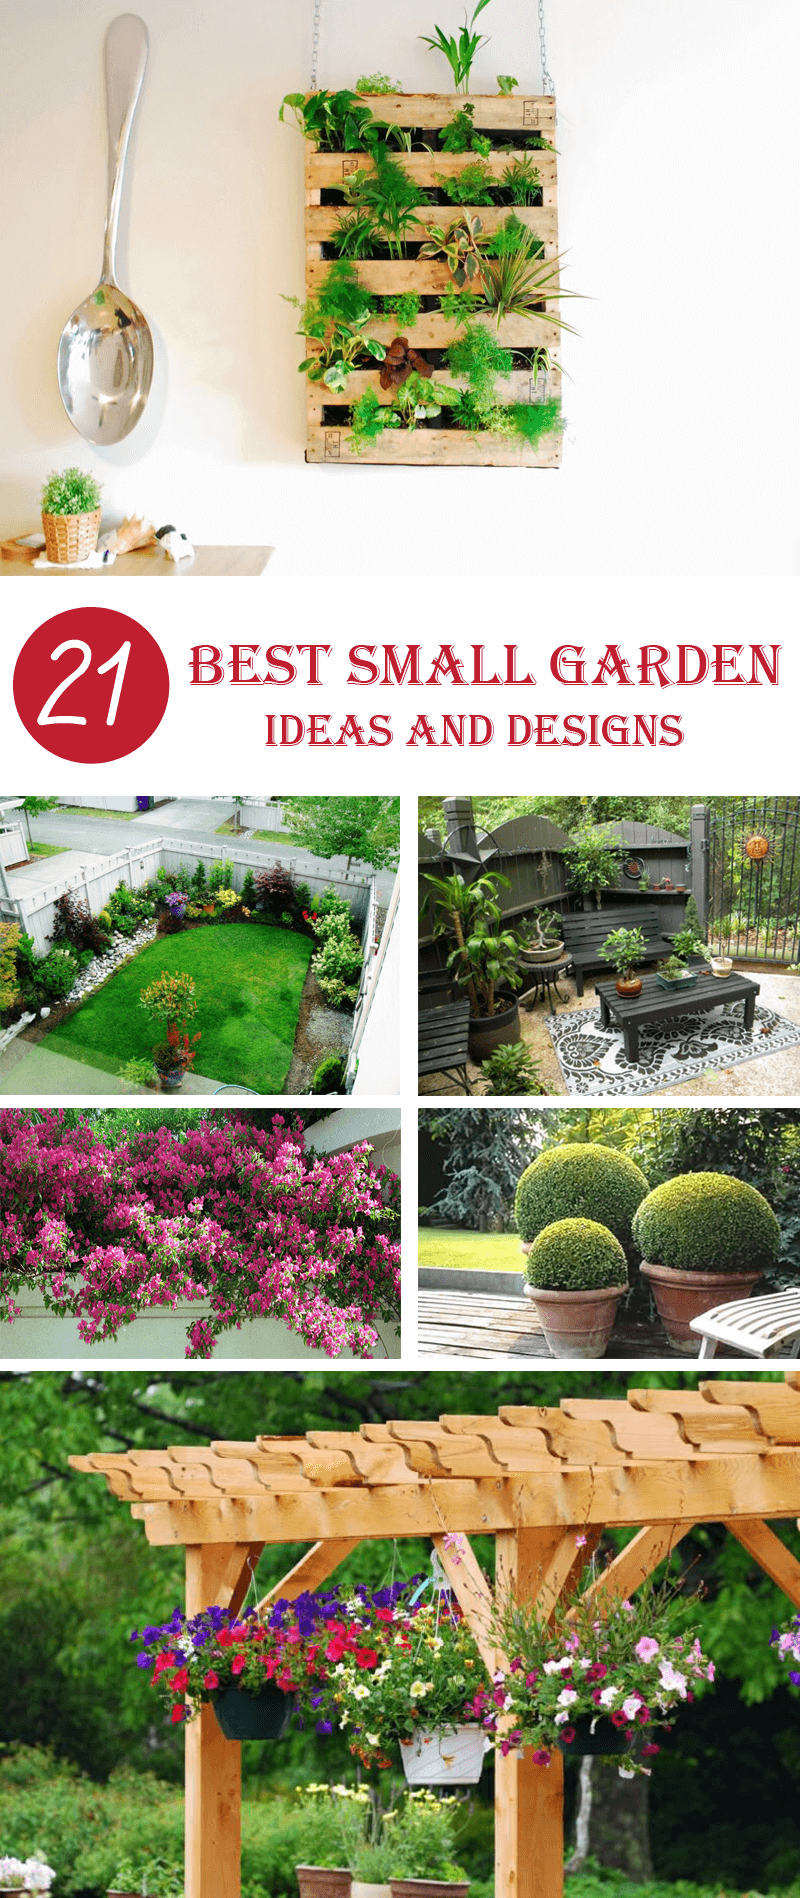 21 Mini Garden Ideas To Beautify Your Home Interiorsherpa